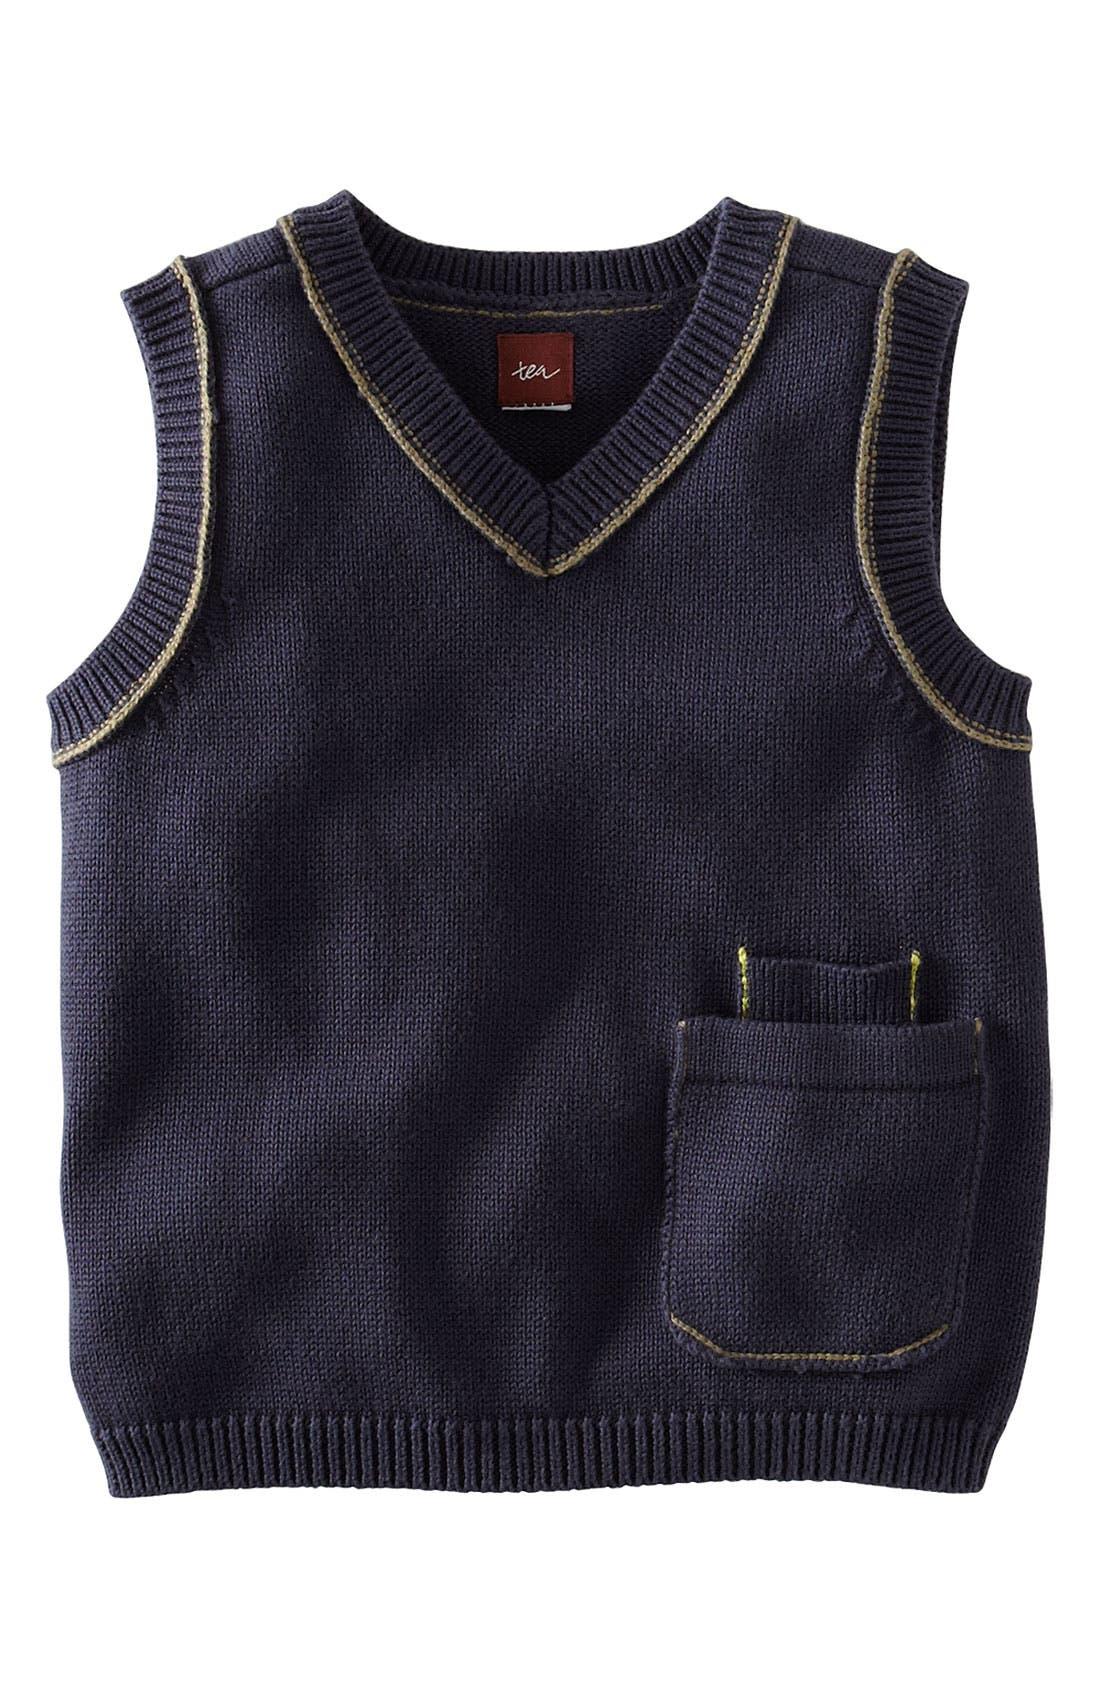 Alternate Image 1 Selected - Tea Collection 'Perfect Pocket' Vest (Infant)